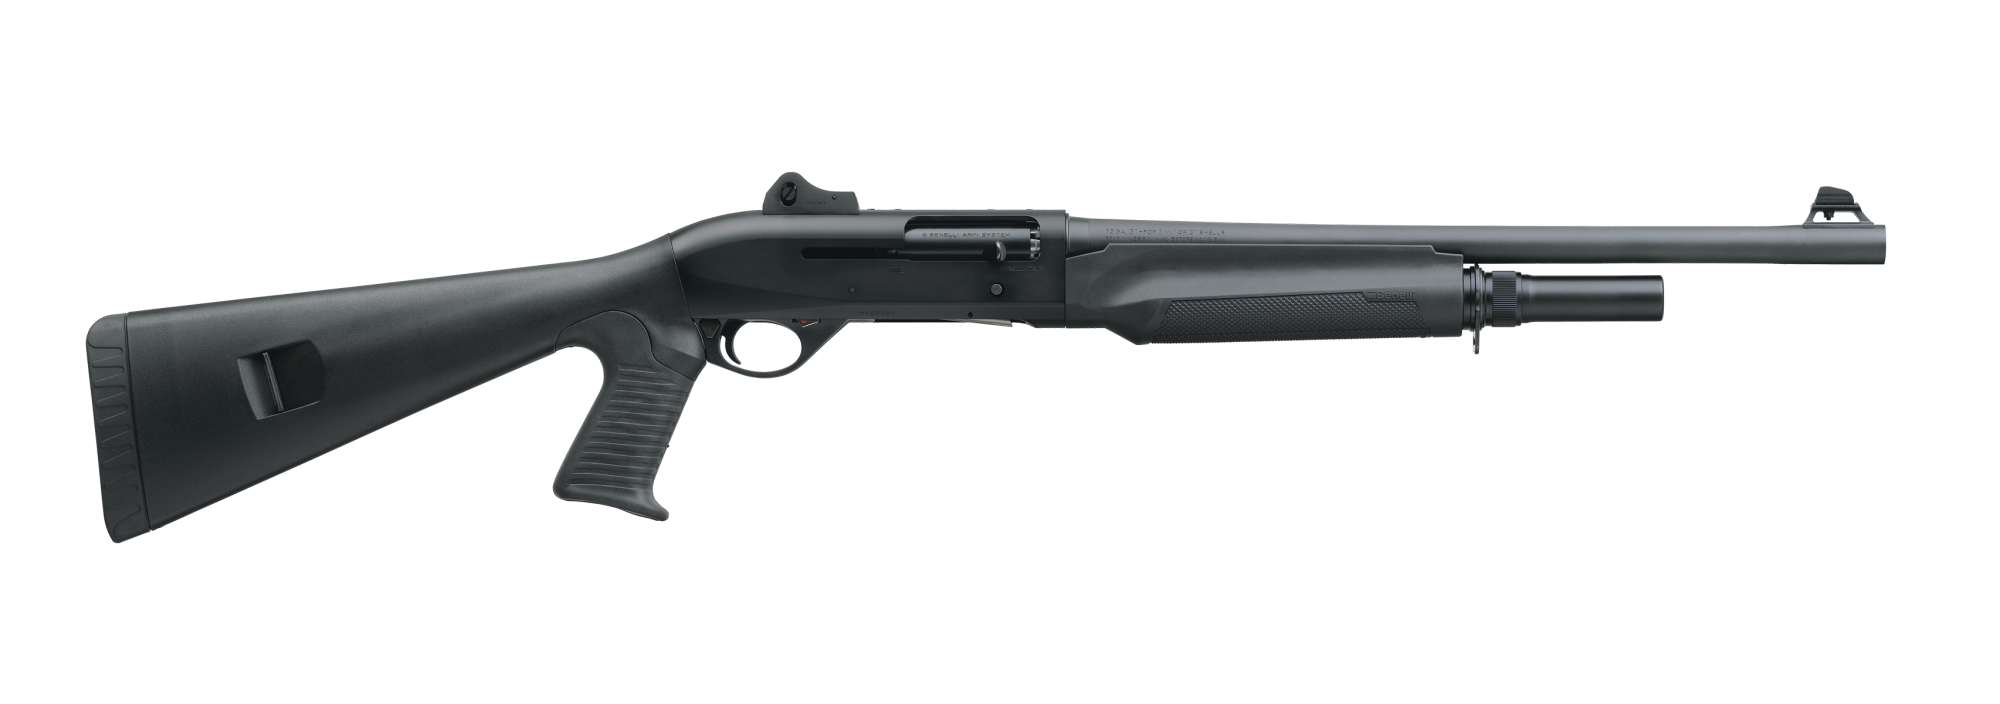 m2-tactical-shotgun-pistol-12-gauge